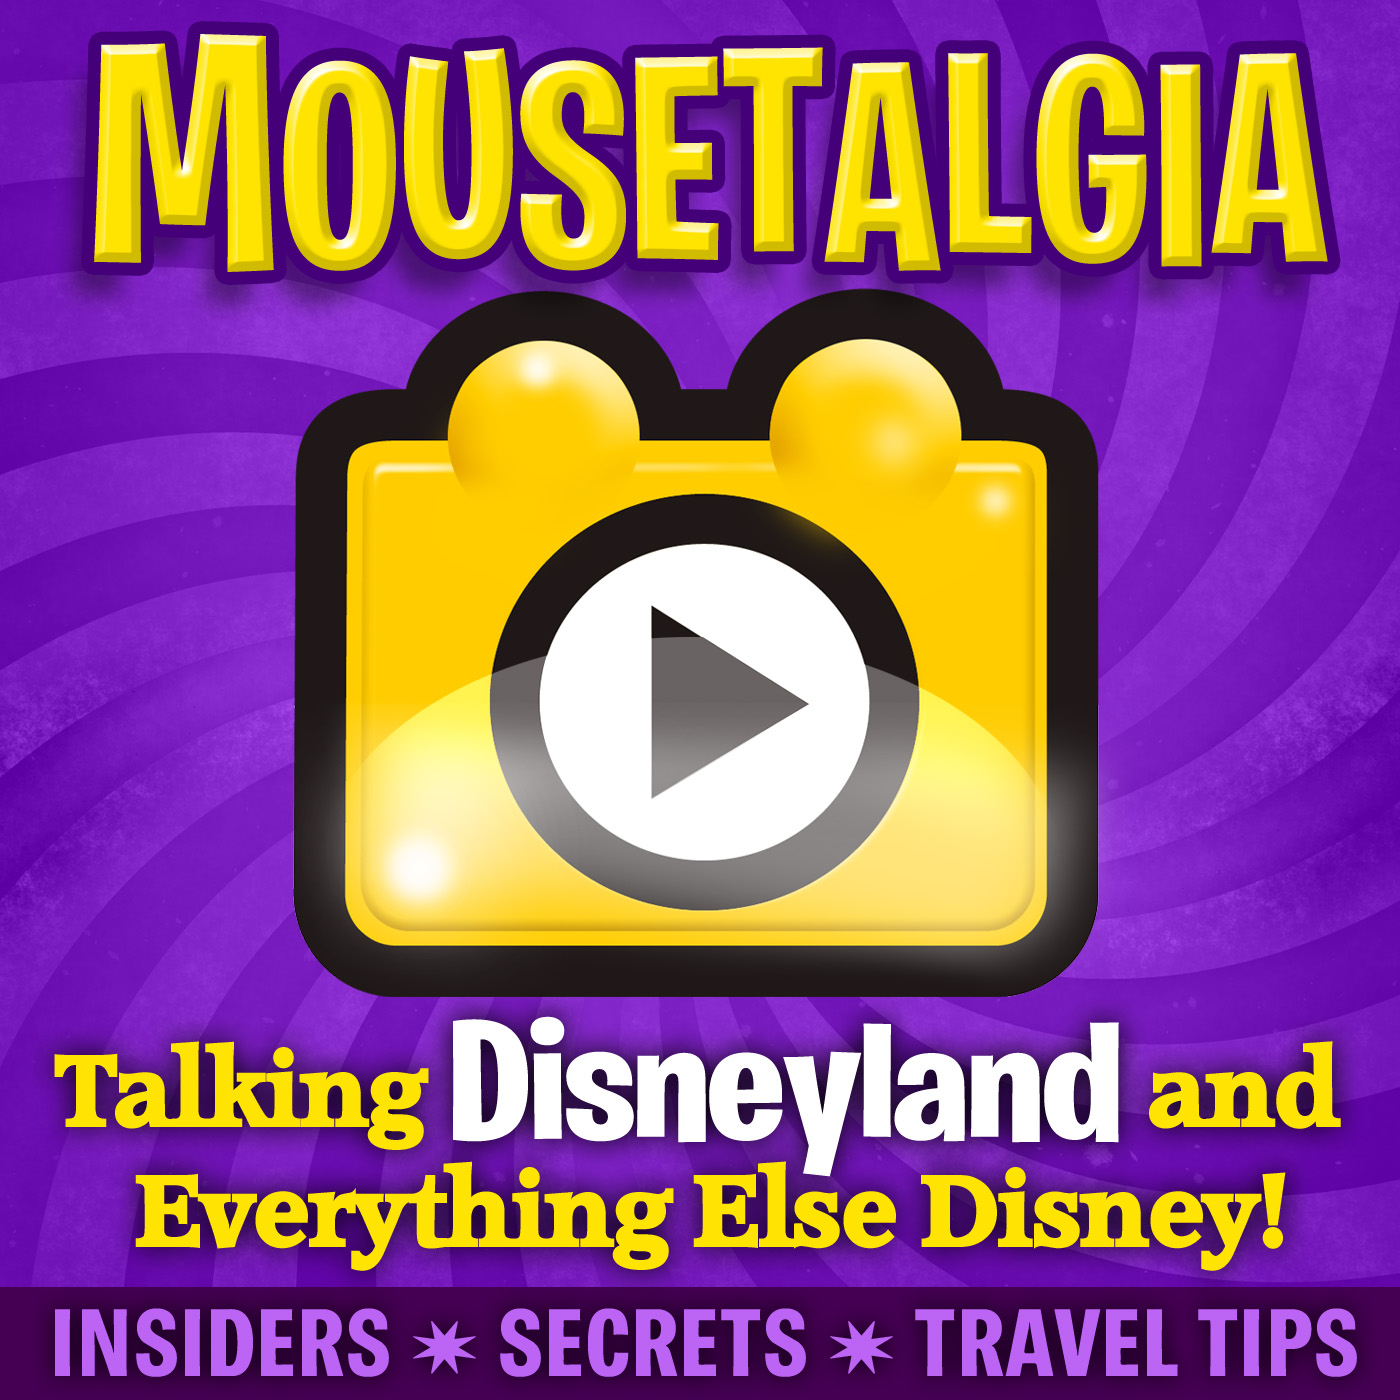 Mousetalgia! - An Unofficial Disneyland Podcast